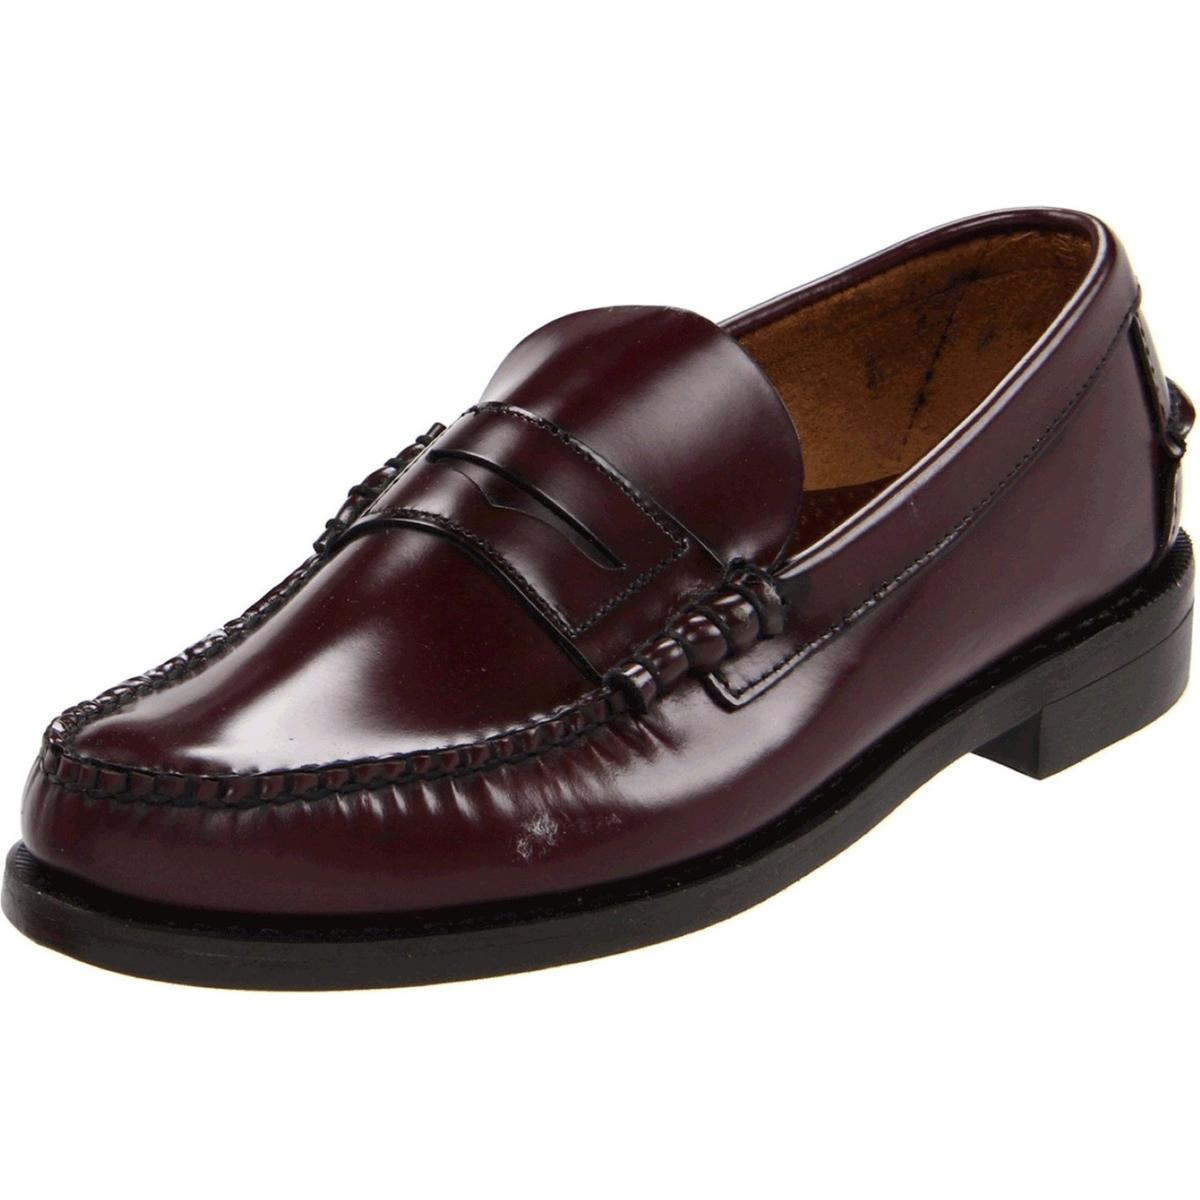 Sebago Classic Antique Brown Mens Antique Brown Loafers by Sebago